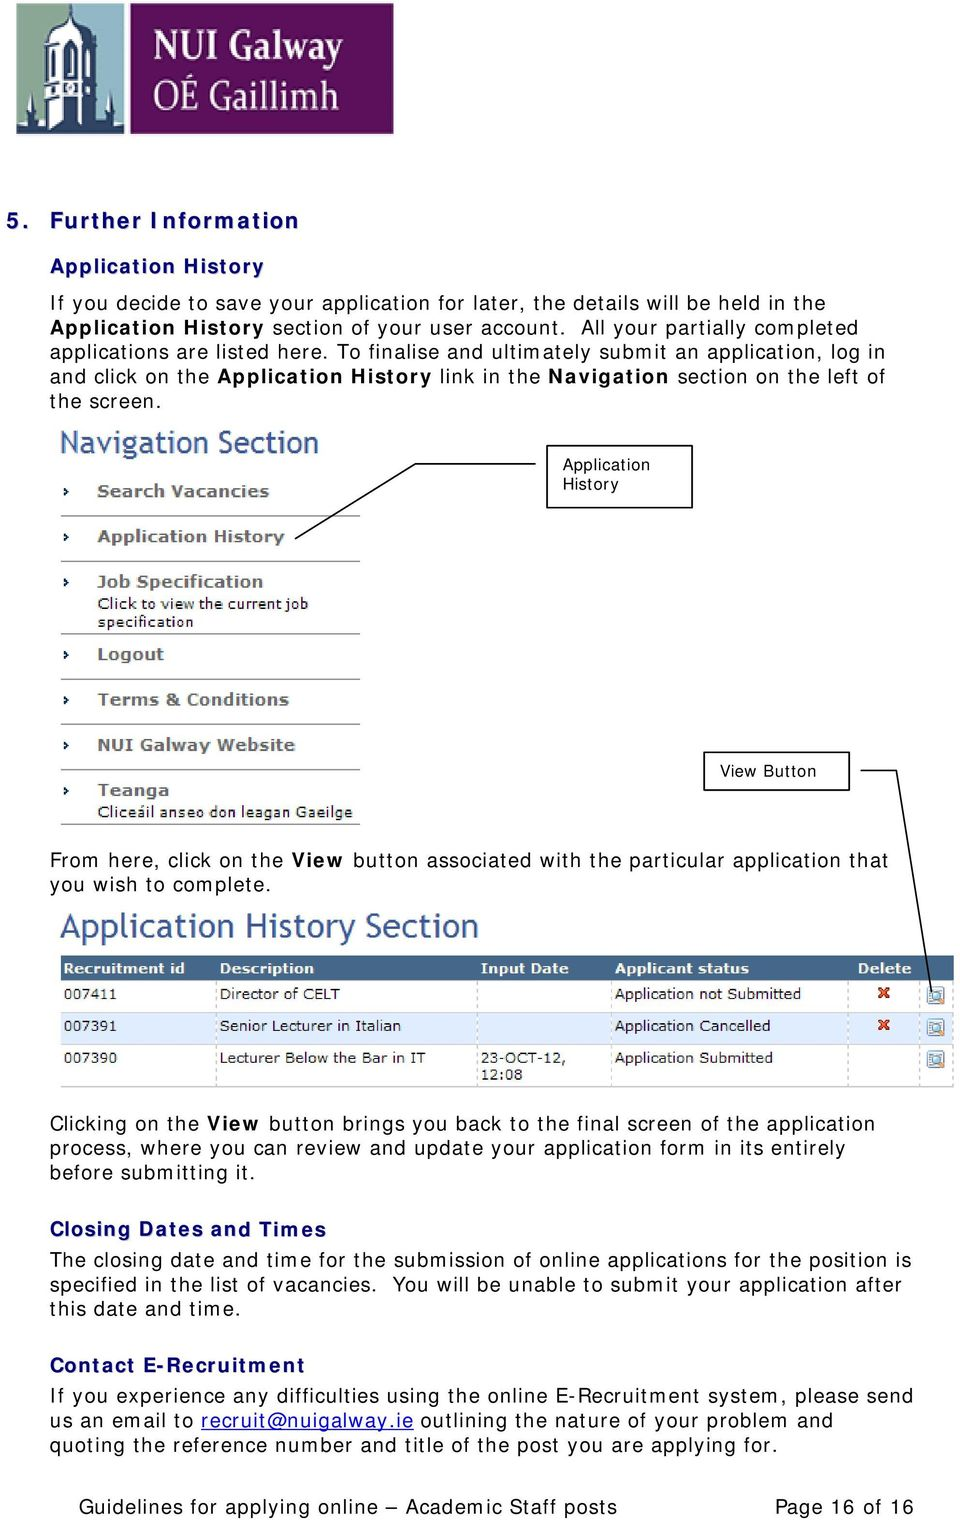 To finalise and ultimately submit an application, log in and click on the Application History link in the Navigation section on the left of the screen.